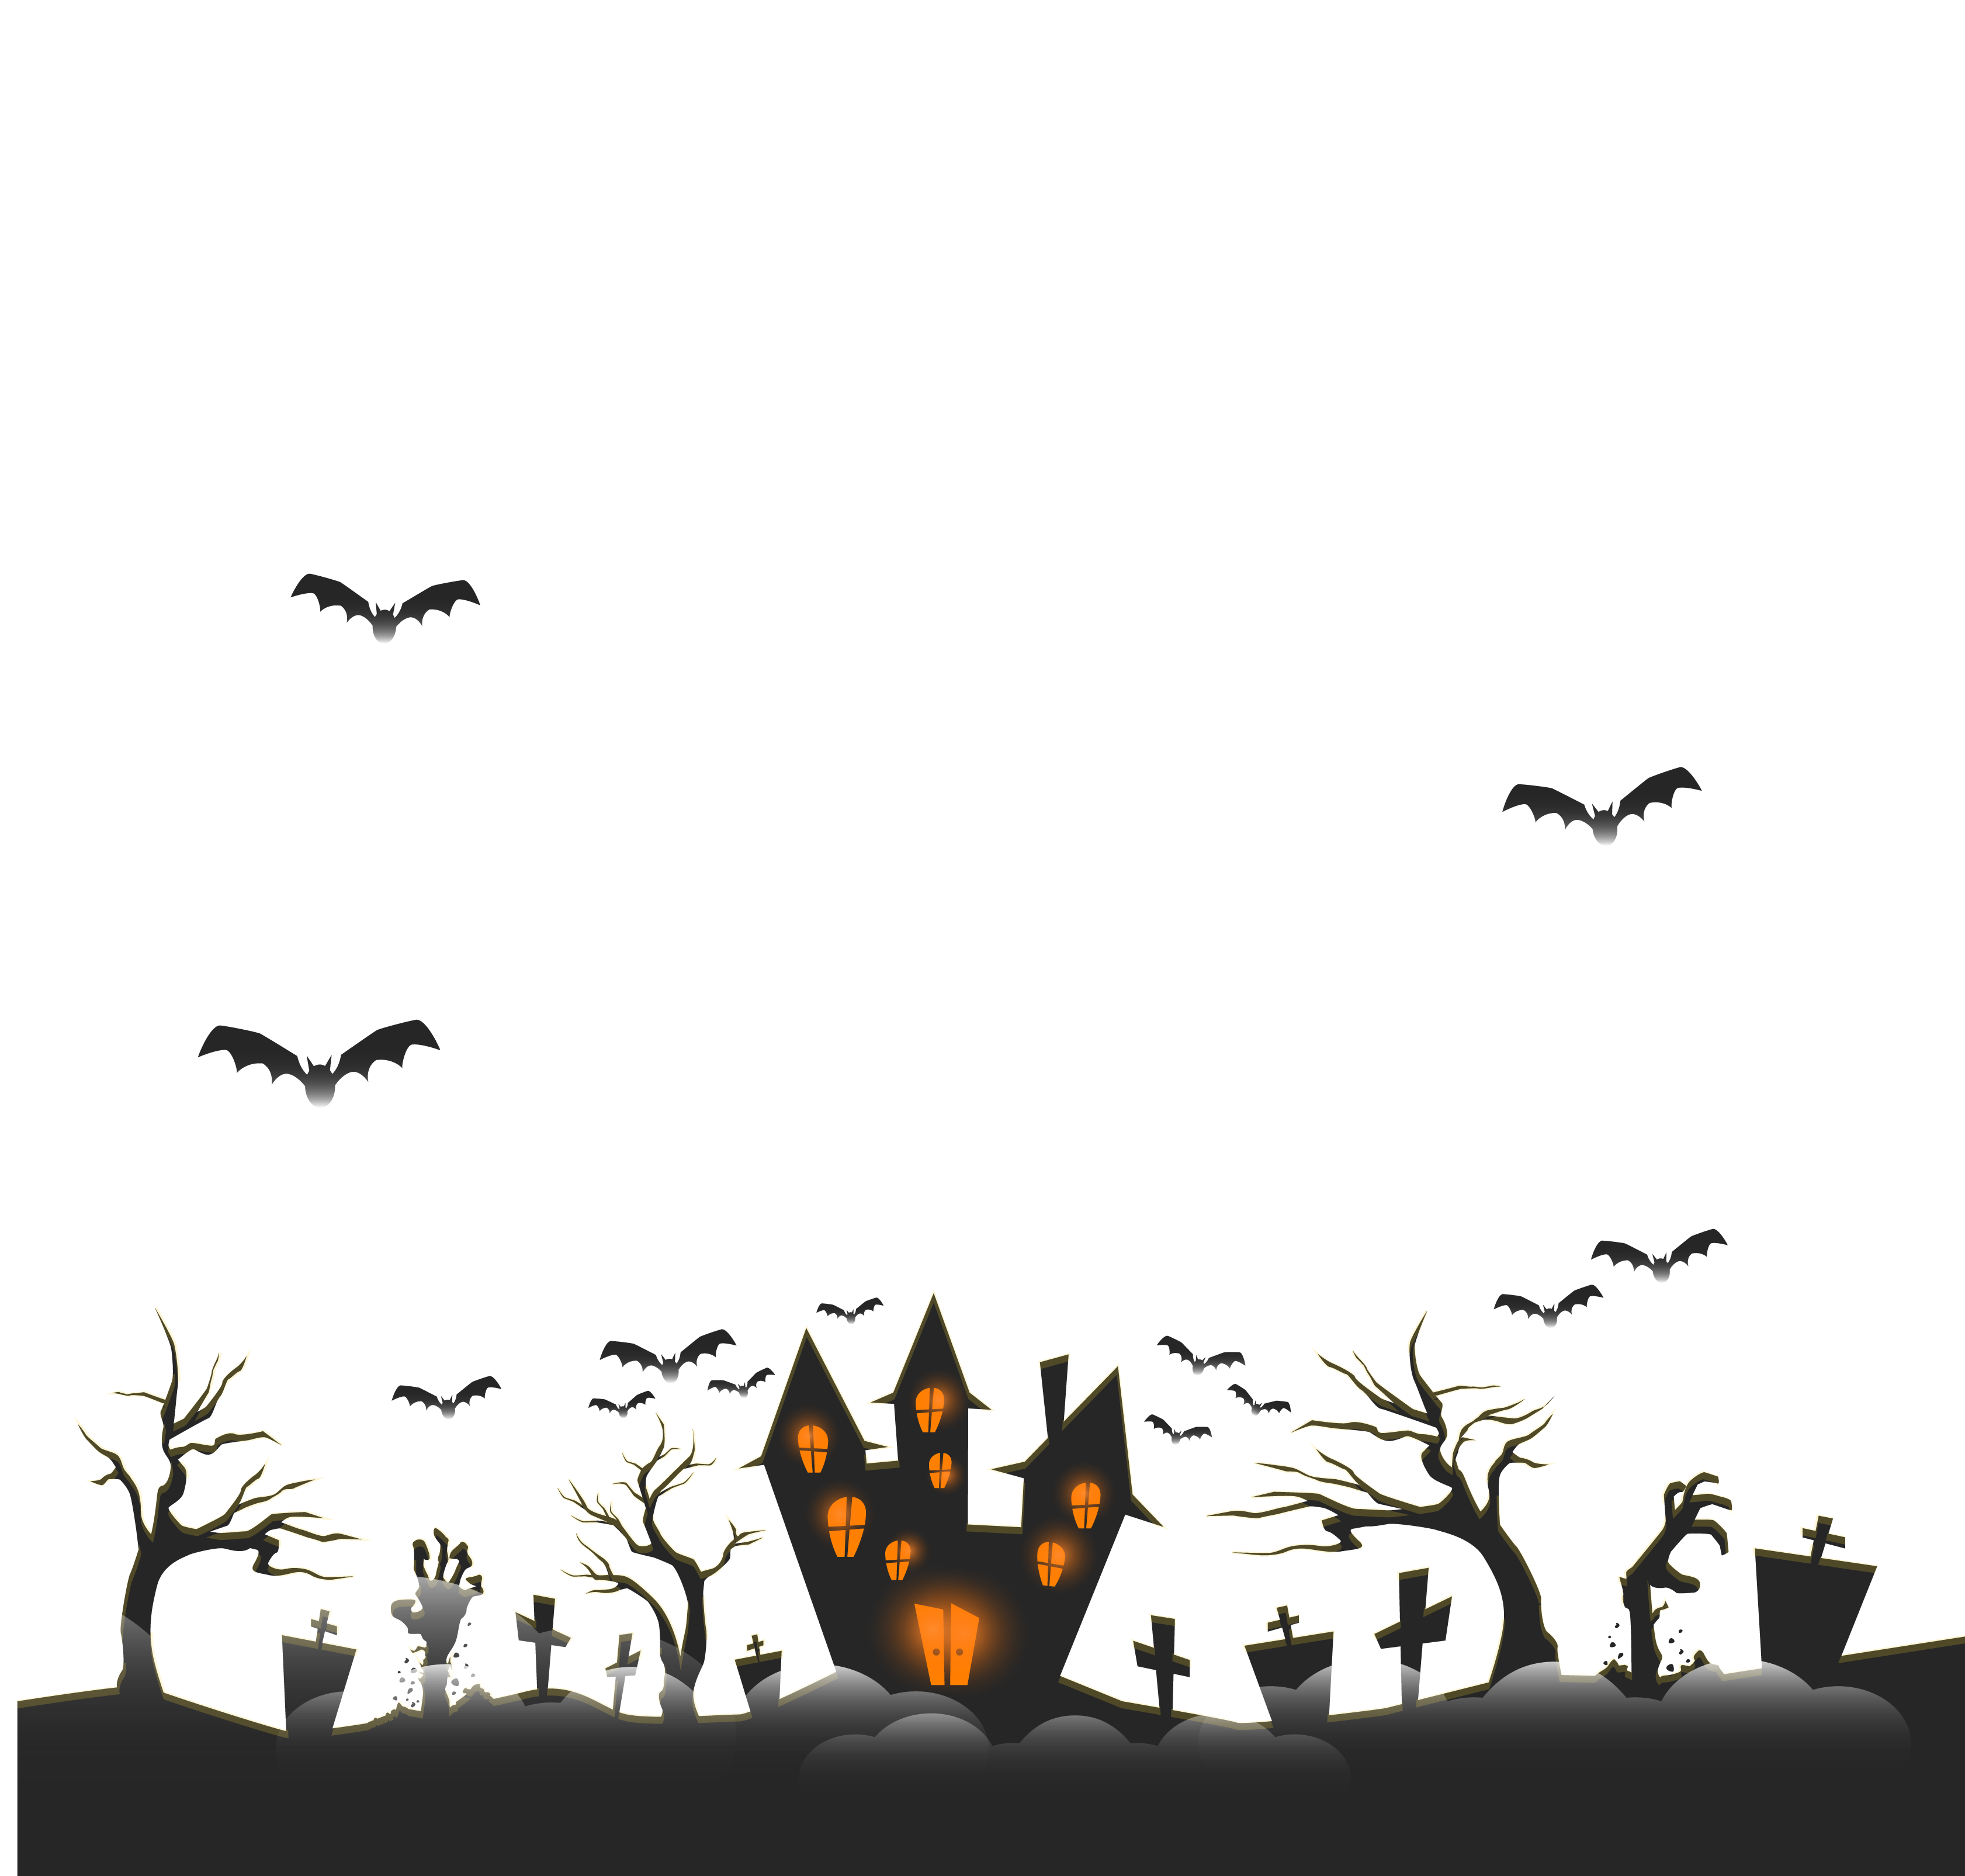 Horror vector background. Halloween ghost castle transprent